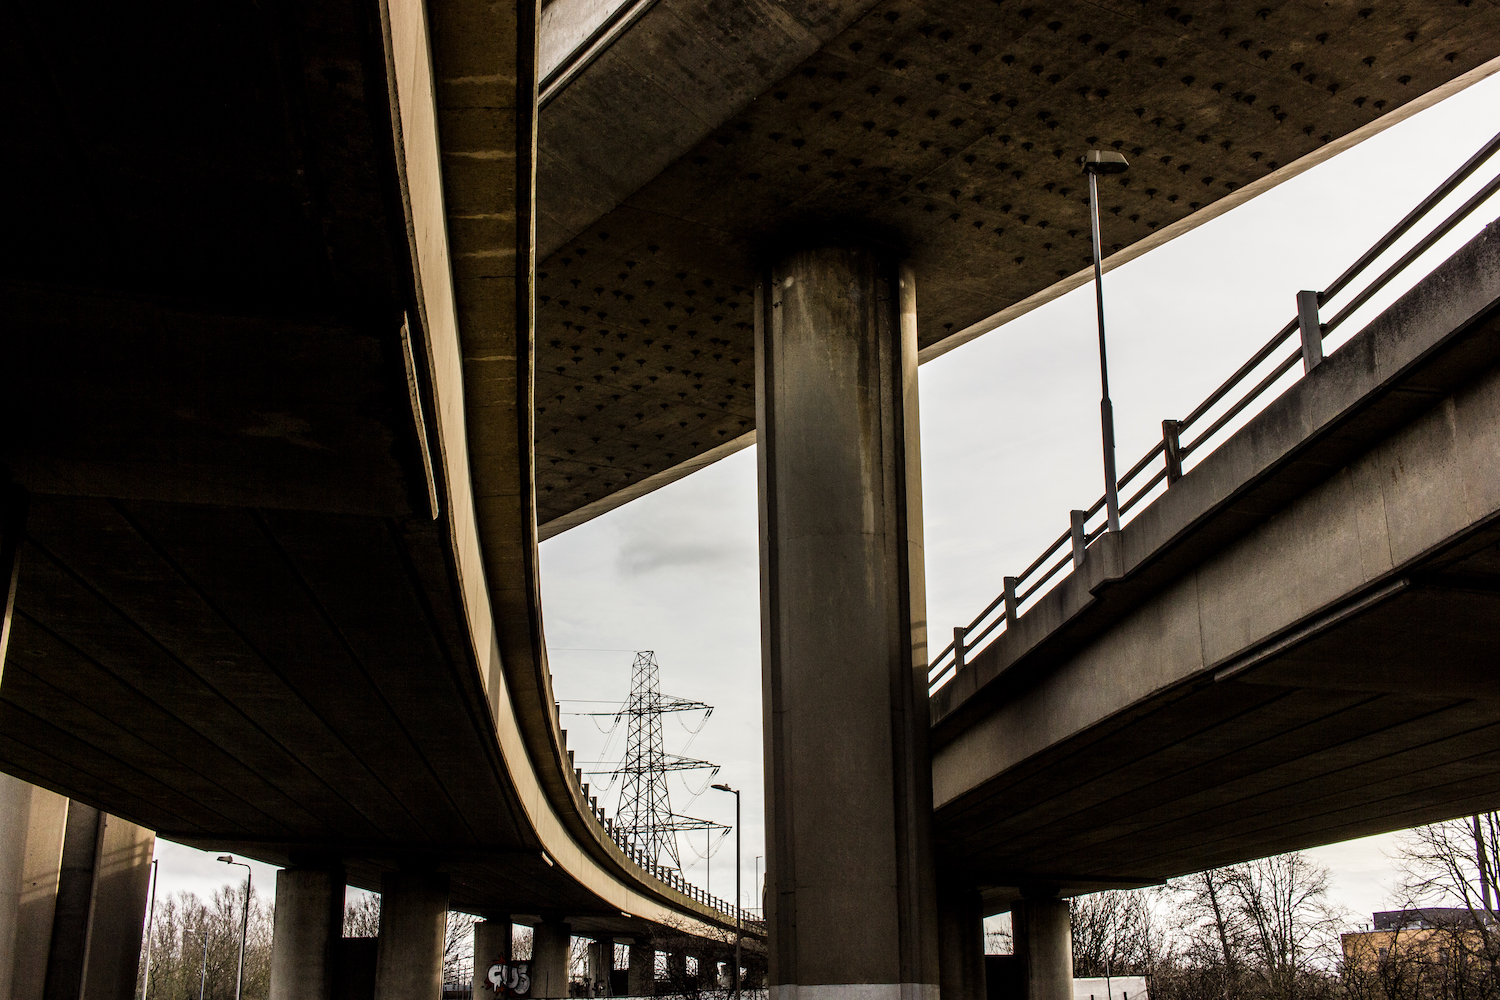 Professional Photography Concrete Roundabout In South Woodford North East London With Three Overpasses One Pillar And Electrical Tower